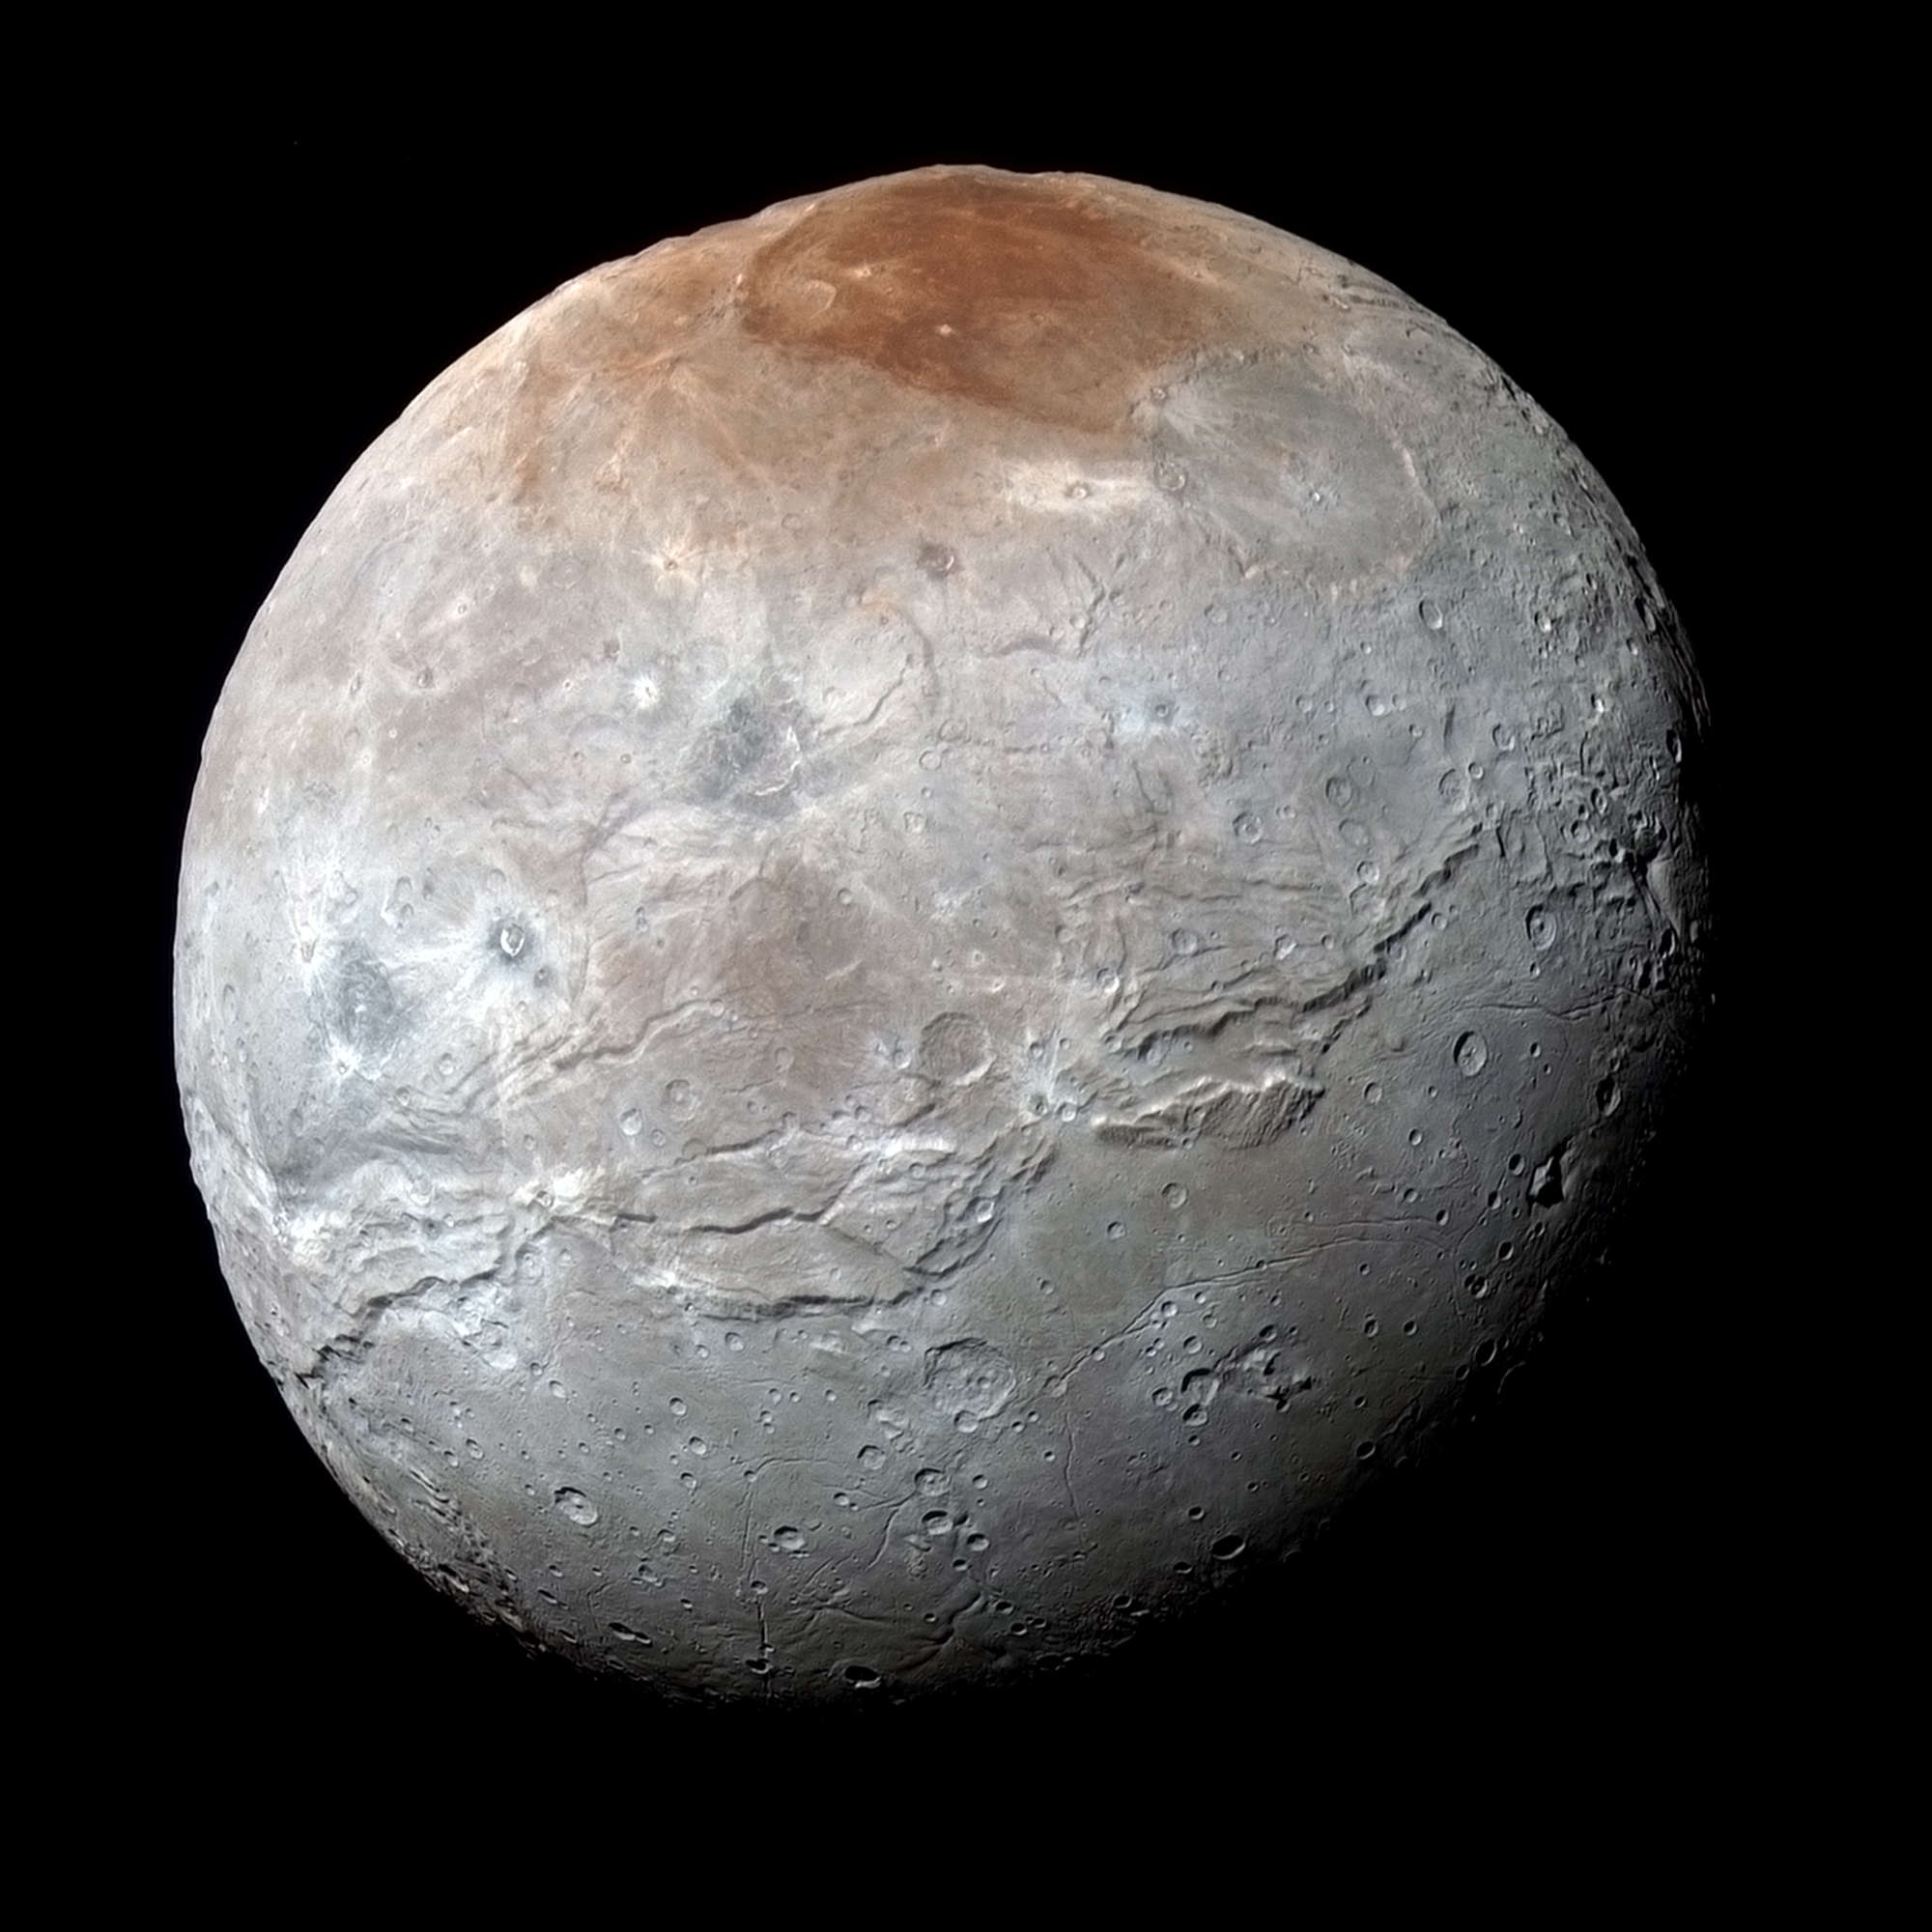 This enhanced color view of Charon comes from New Horizons' Ralph color camera. The colors highlight the subtle variations in the composition of Charon's crust, with the reddish region near the north pole -- informally named Mordor Macular -- standing out most prominently. Credit: NASA/Johns Hopkins University Applied Physics Laboratory/Southwest Research Institute